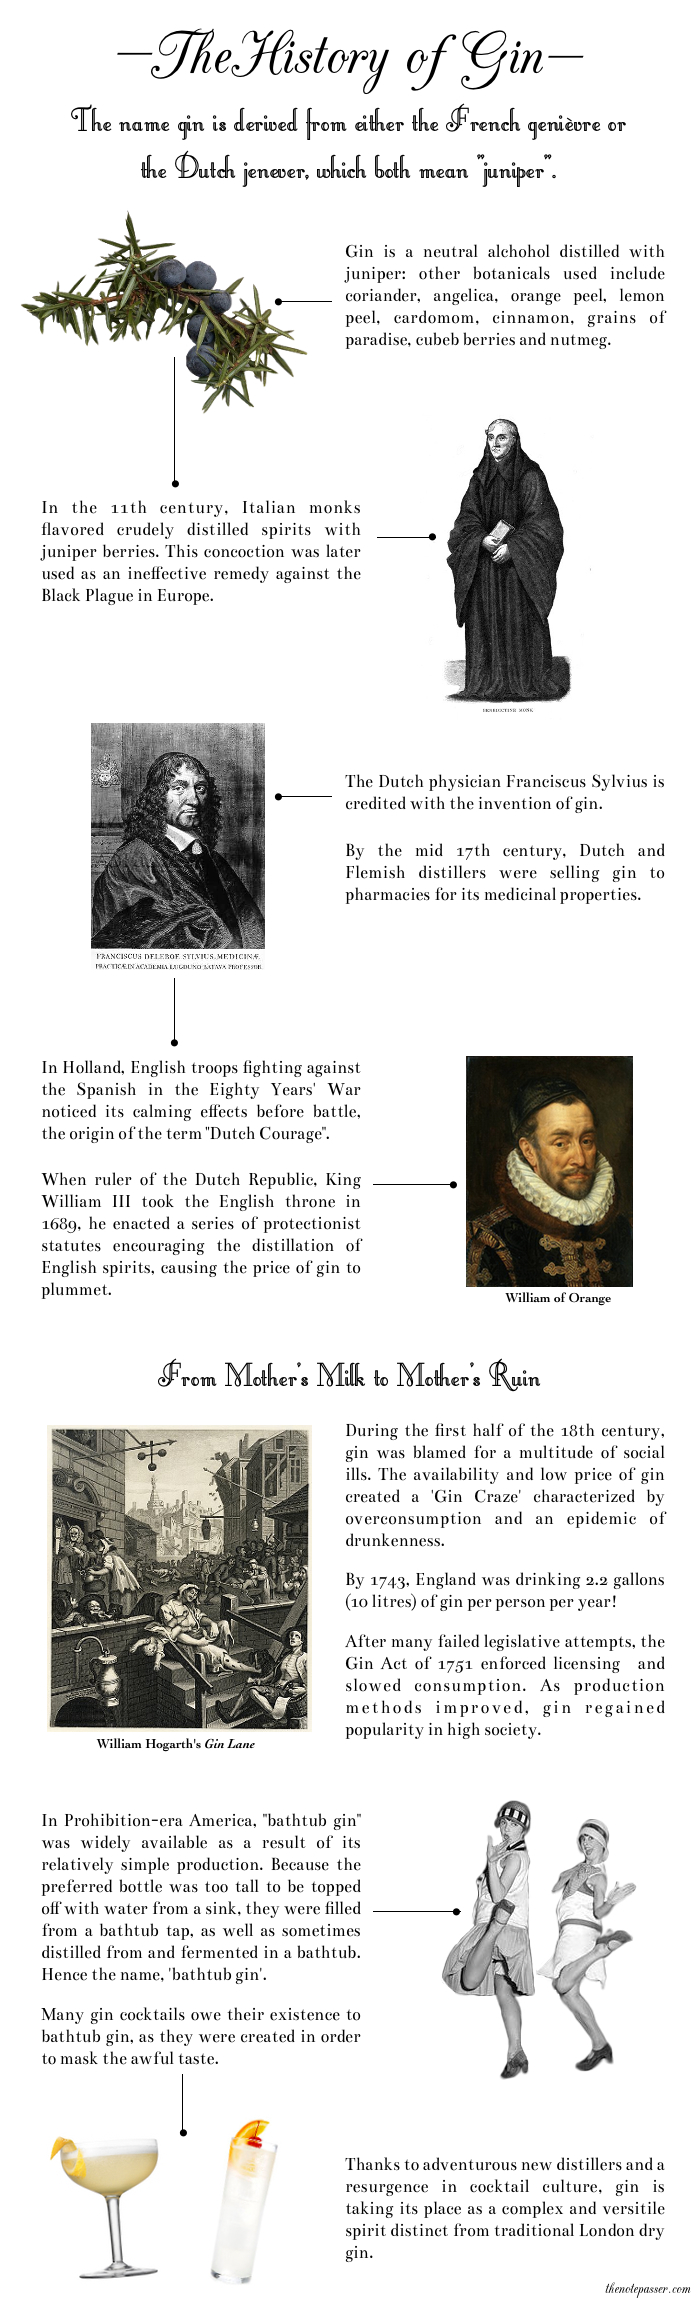 A Visual History of Gin - thenotepasser.com